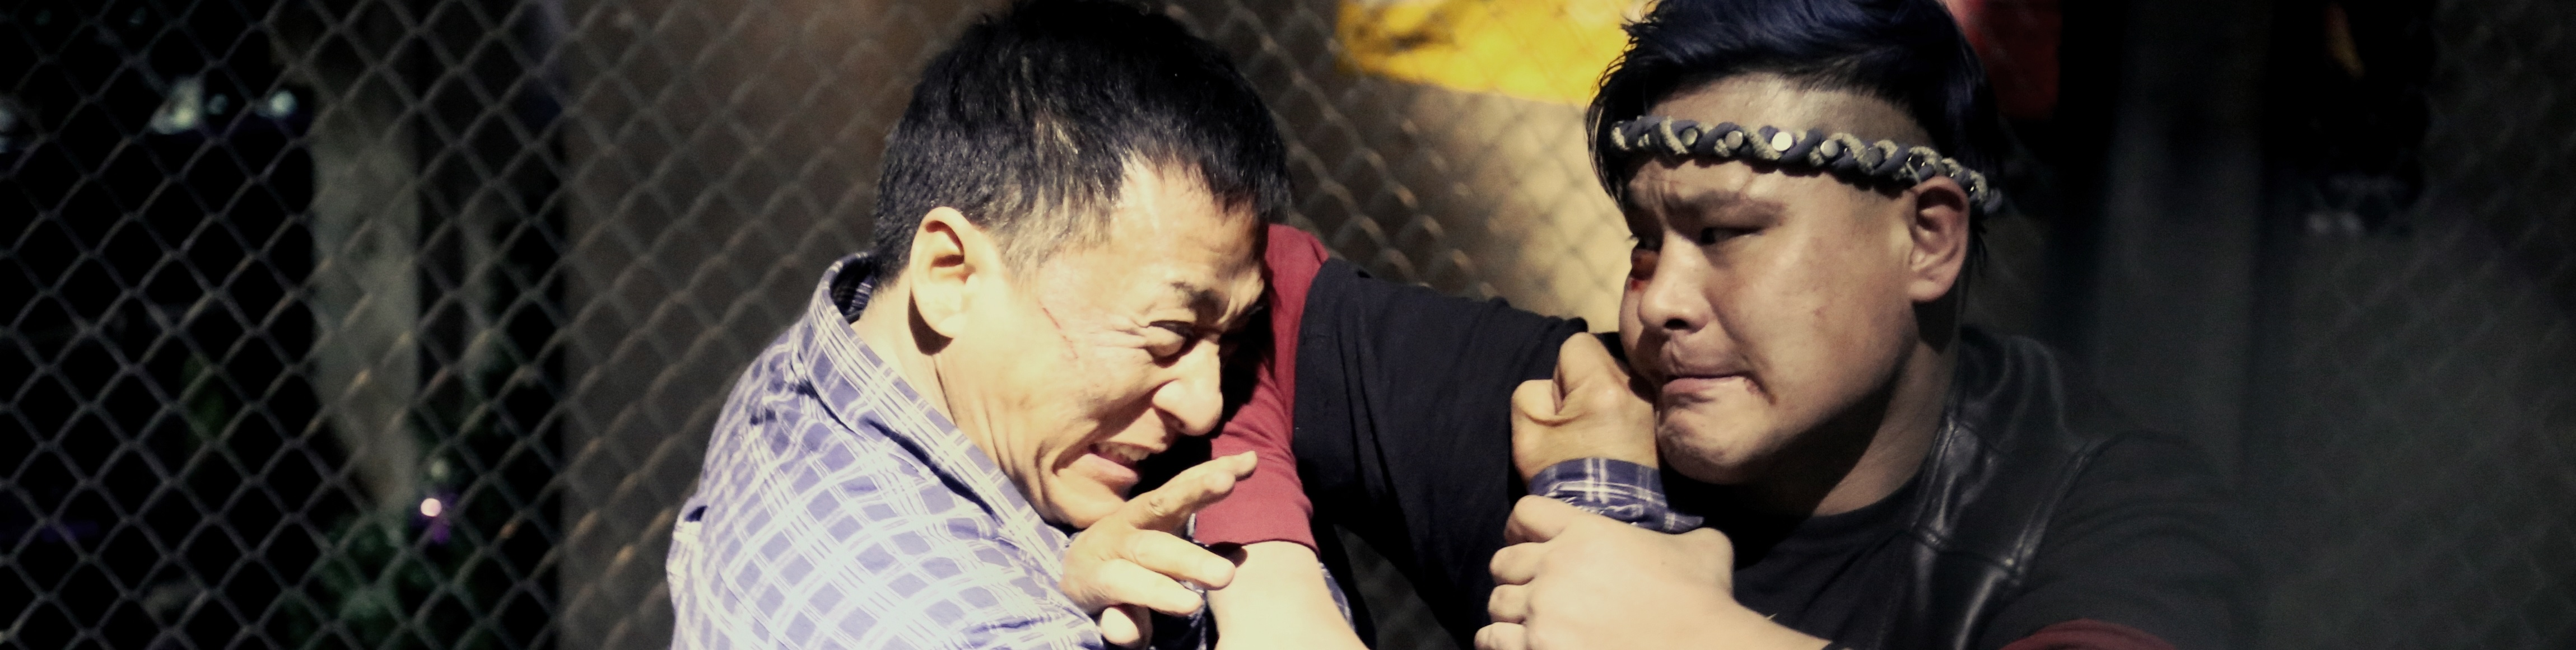 DVD Review - Police Story: Lockdown (2013)